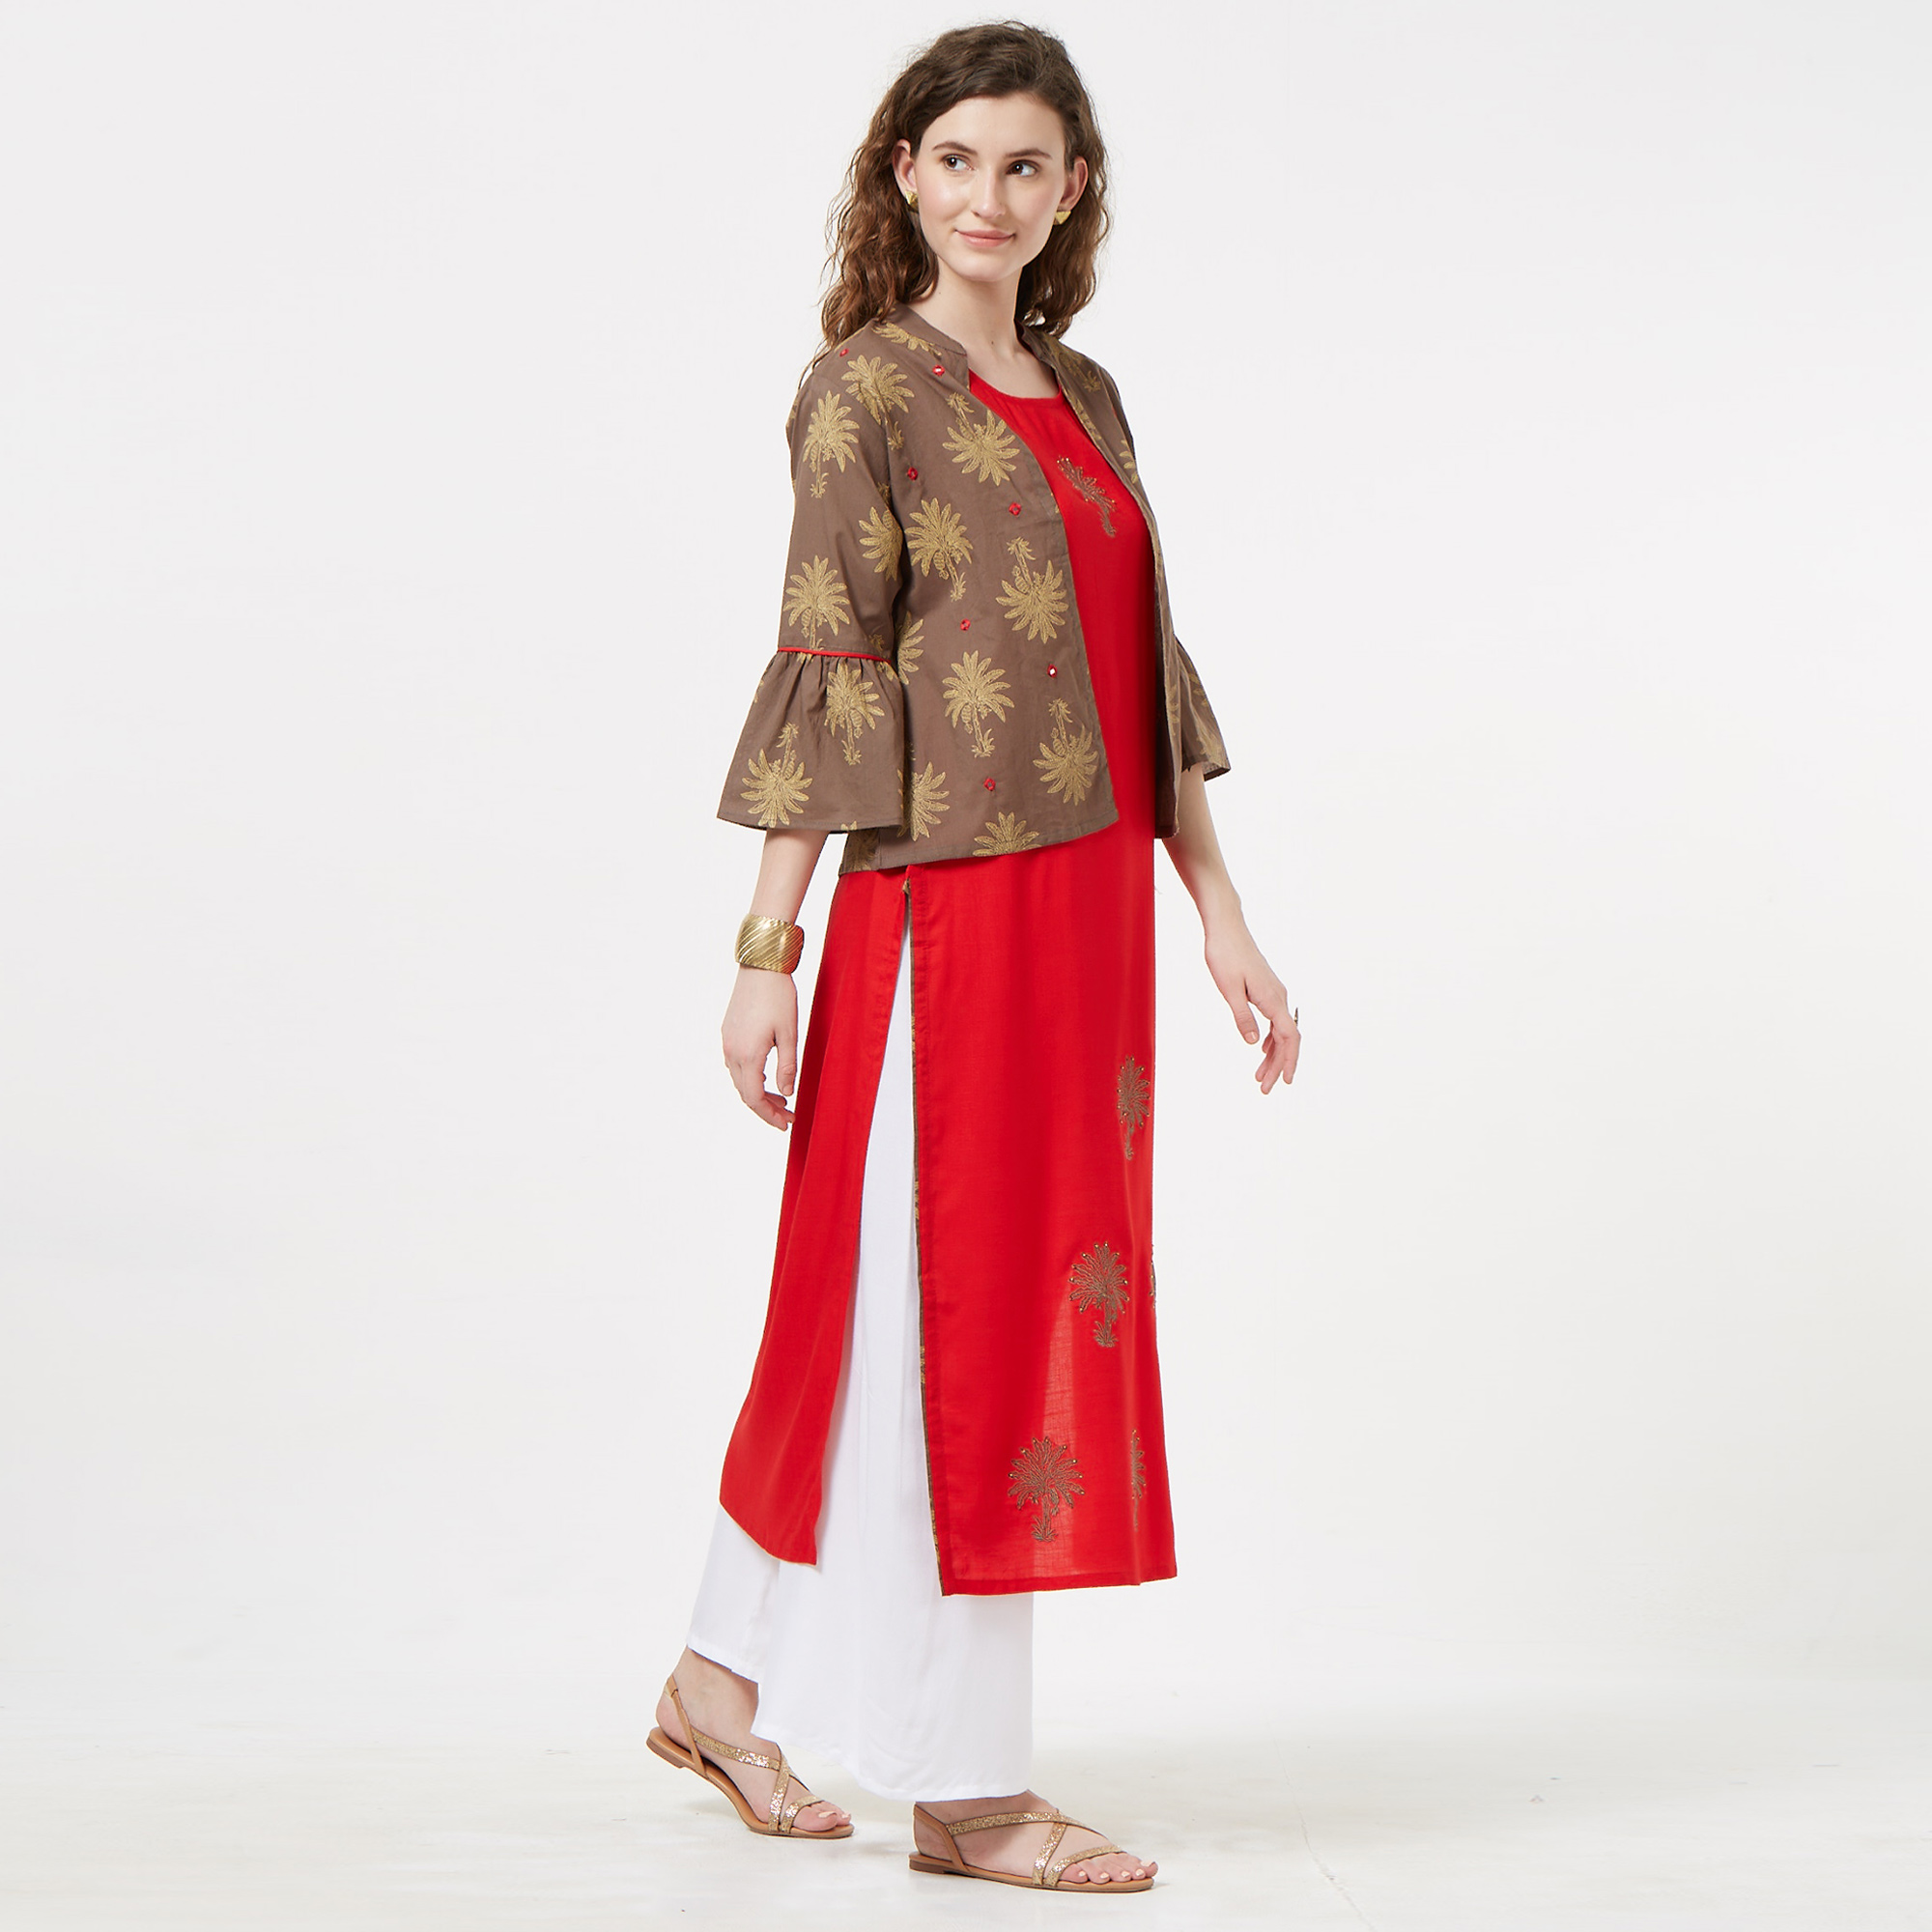 Blooming Red-Brown Colored Partywear Embroidered Koti Style Rayon Kurti